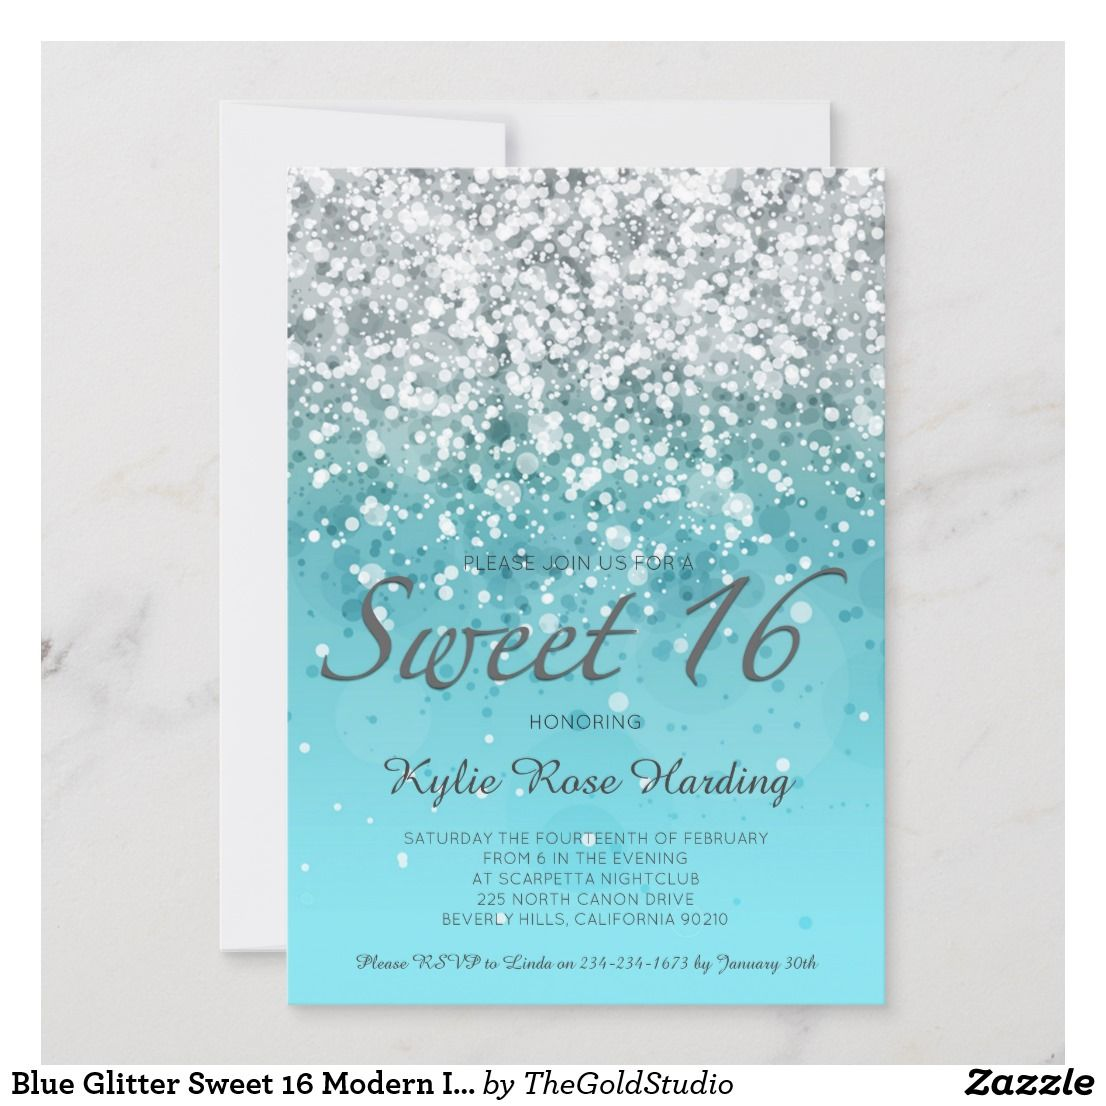 Blue Glitter Sweet 16 Modern Invitation Card Zazzle Com Dengan